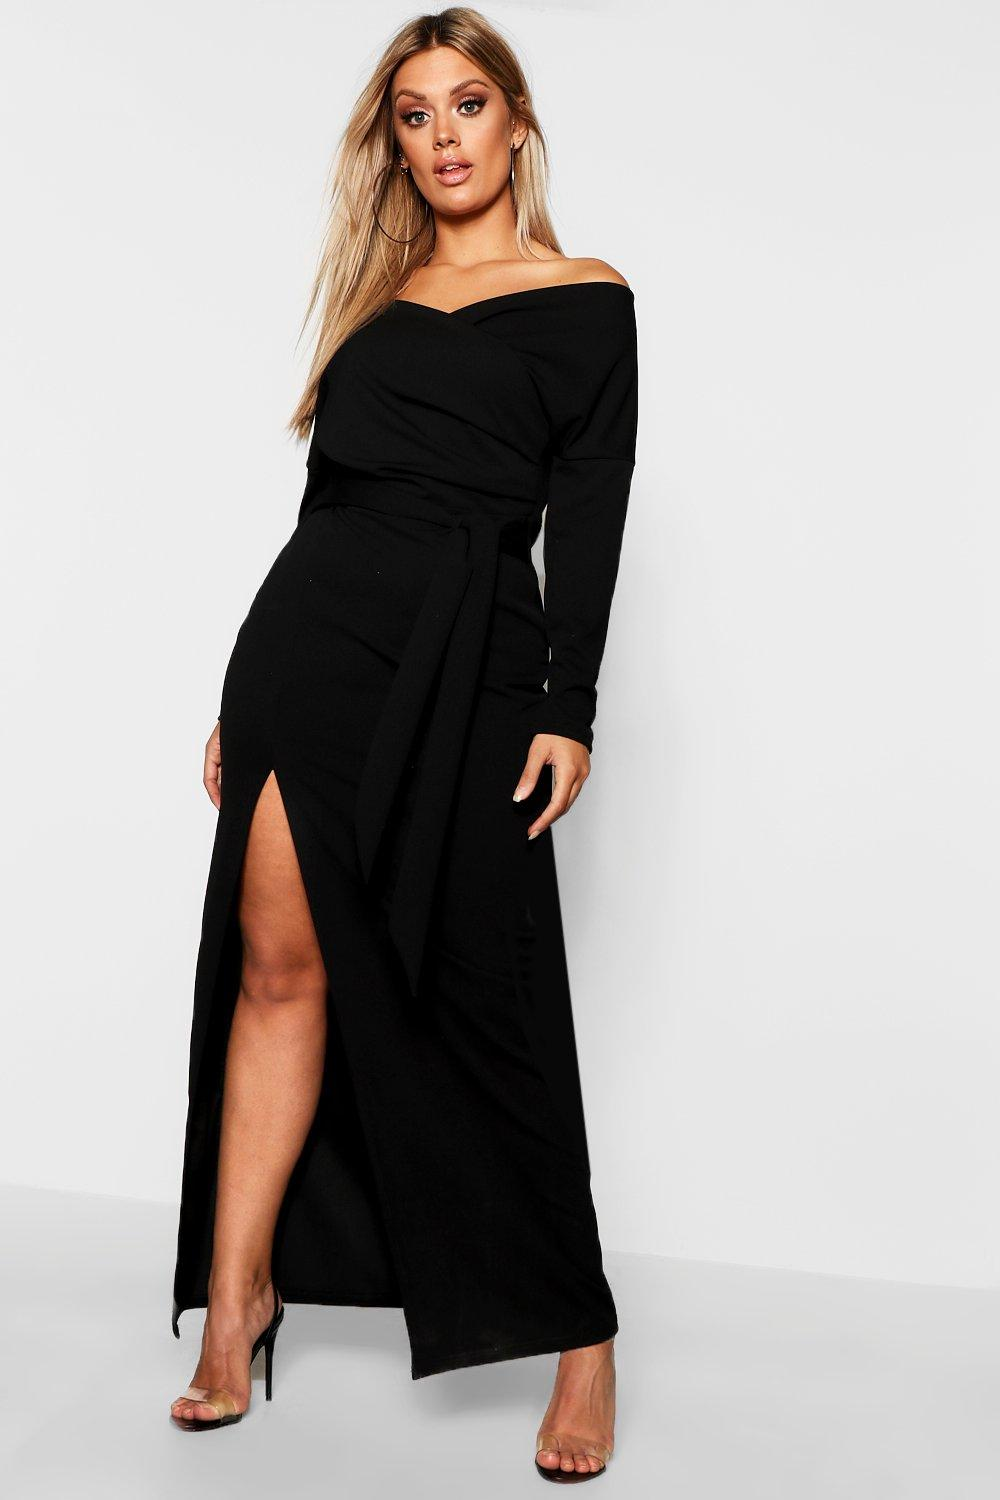 boohoo Womens Plus Off The Shoulder Wrap Dress - Black - 20, Black